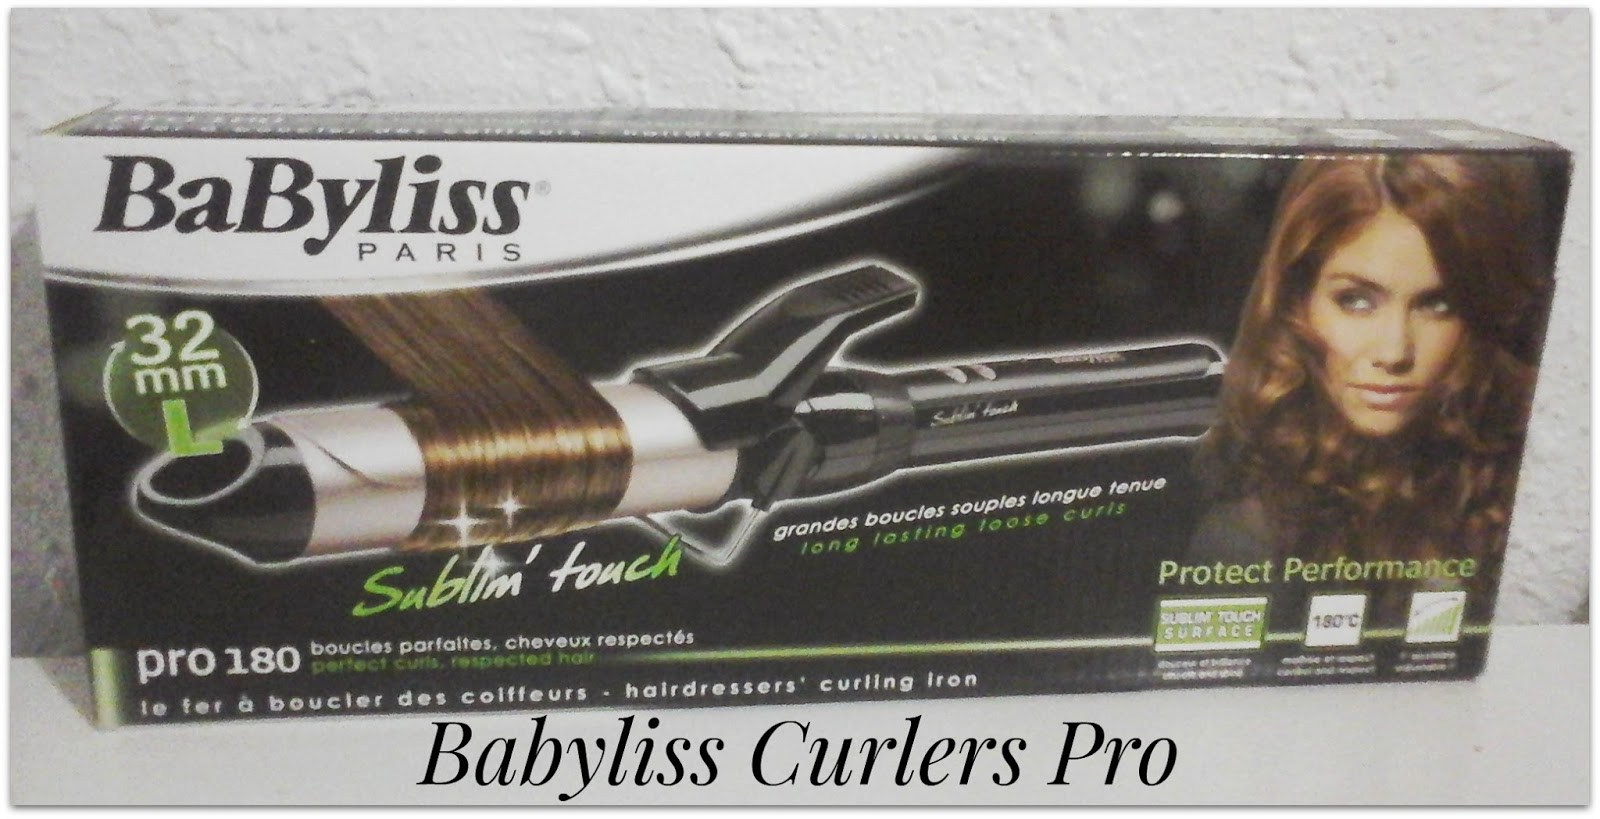 Babyliss Curlers Pro